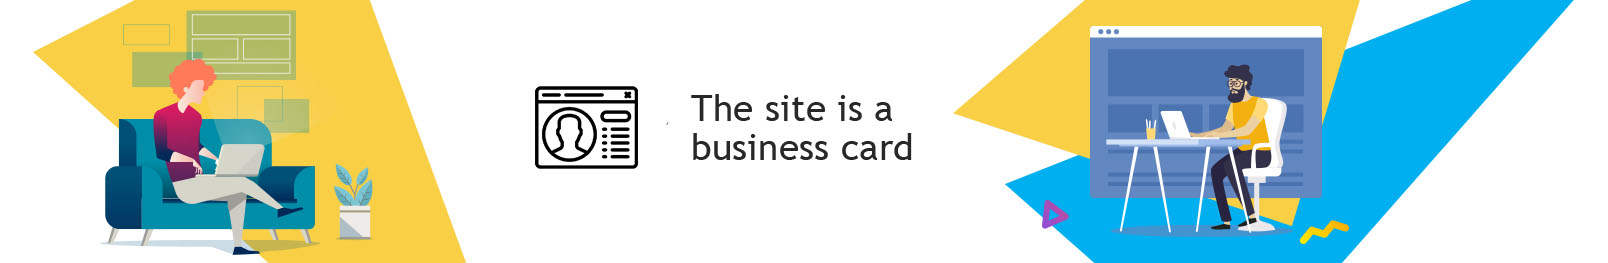 Order website business card Kiev. Order a business card site on a turn-key basis.